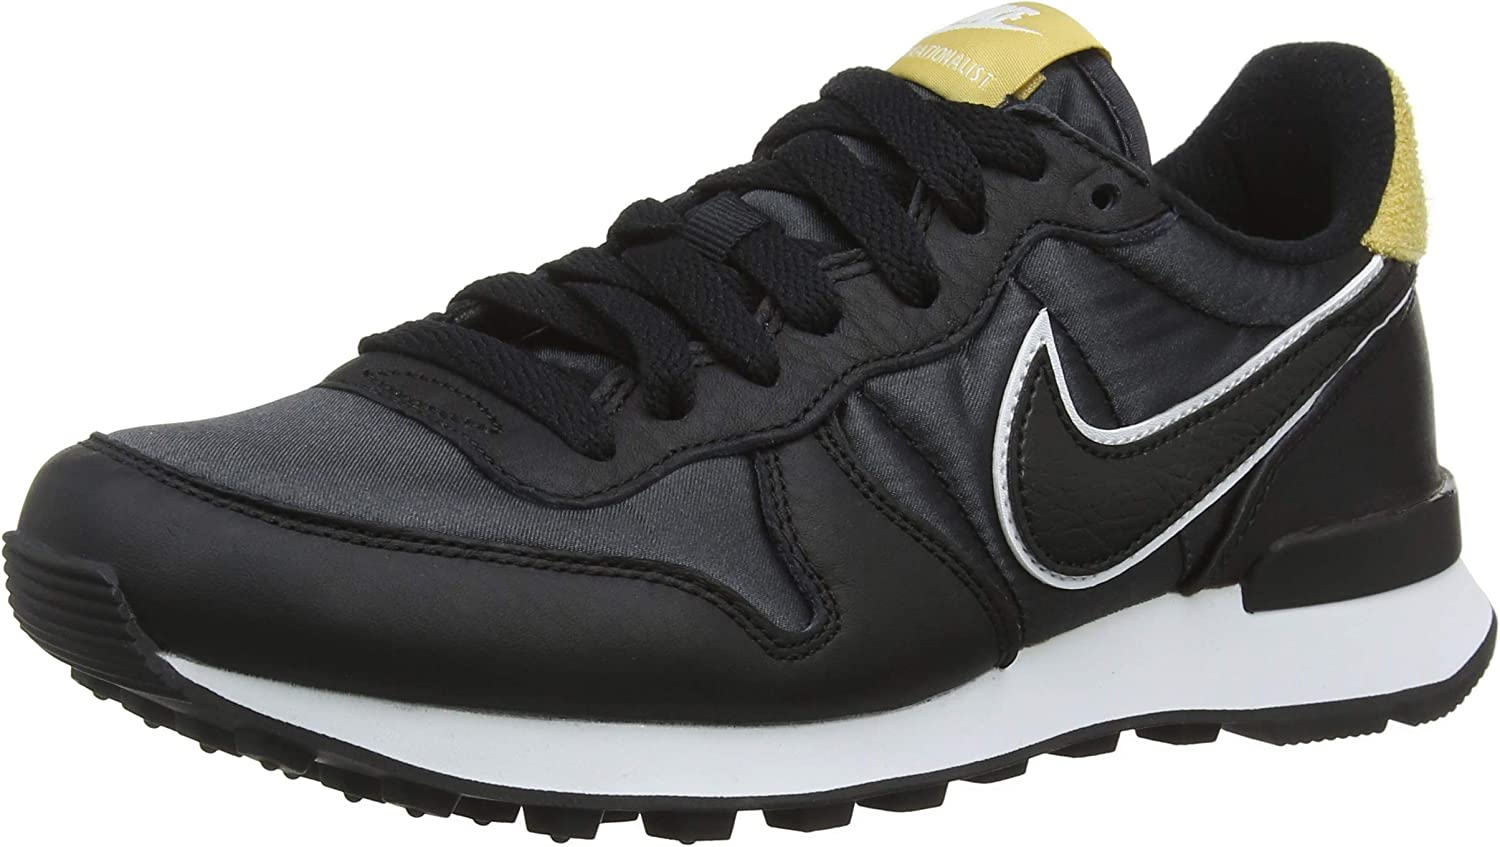 Nike Damen W Internationalist Heat Turnschuhe Mode